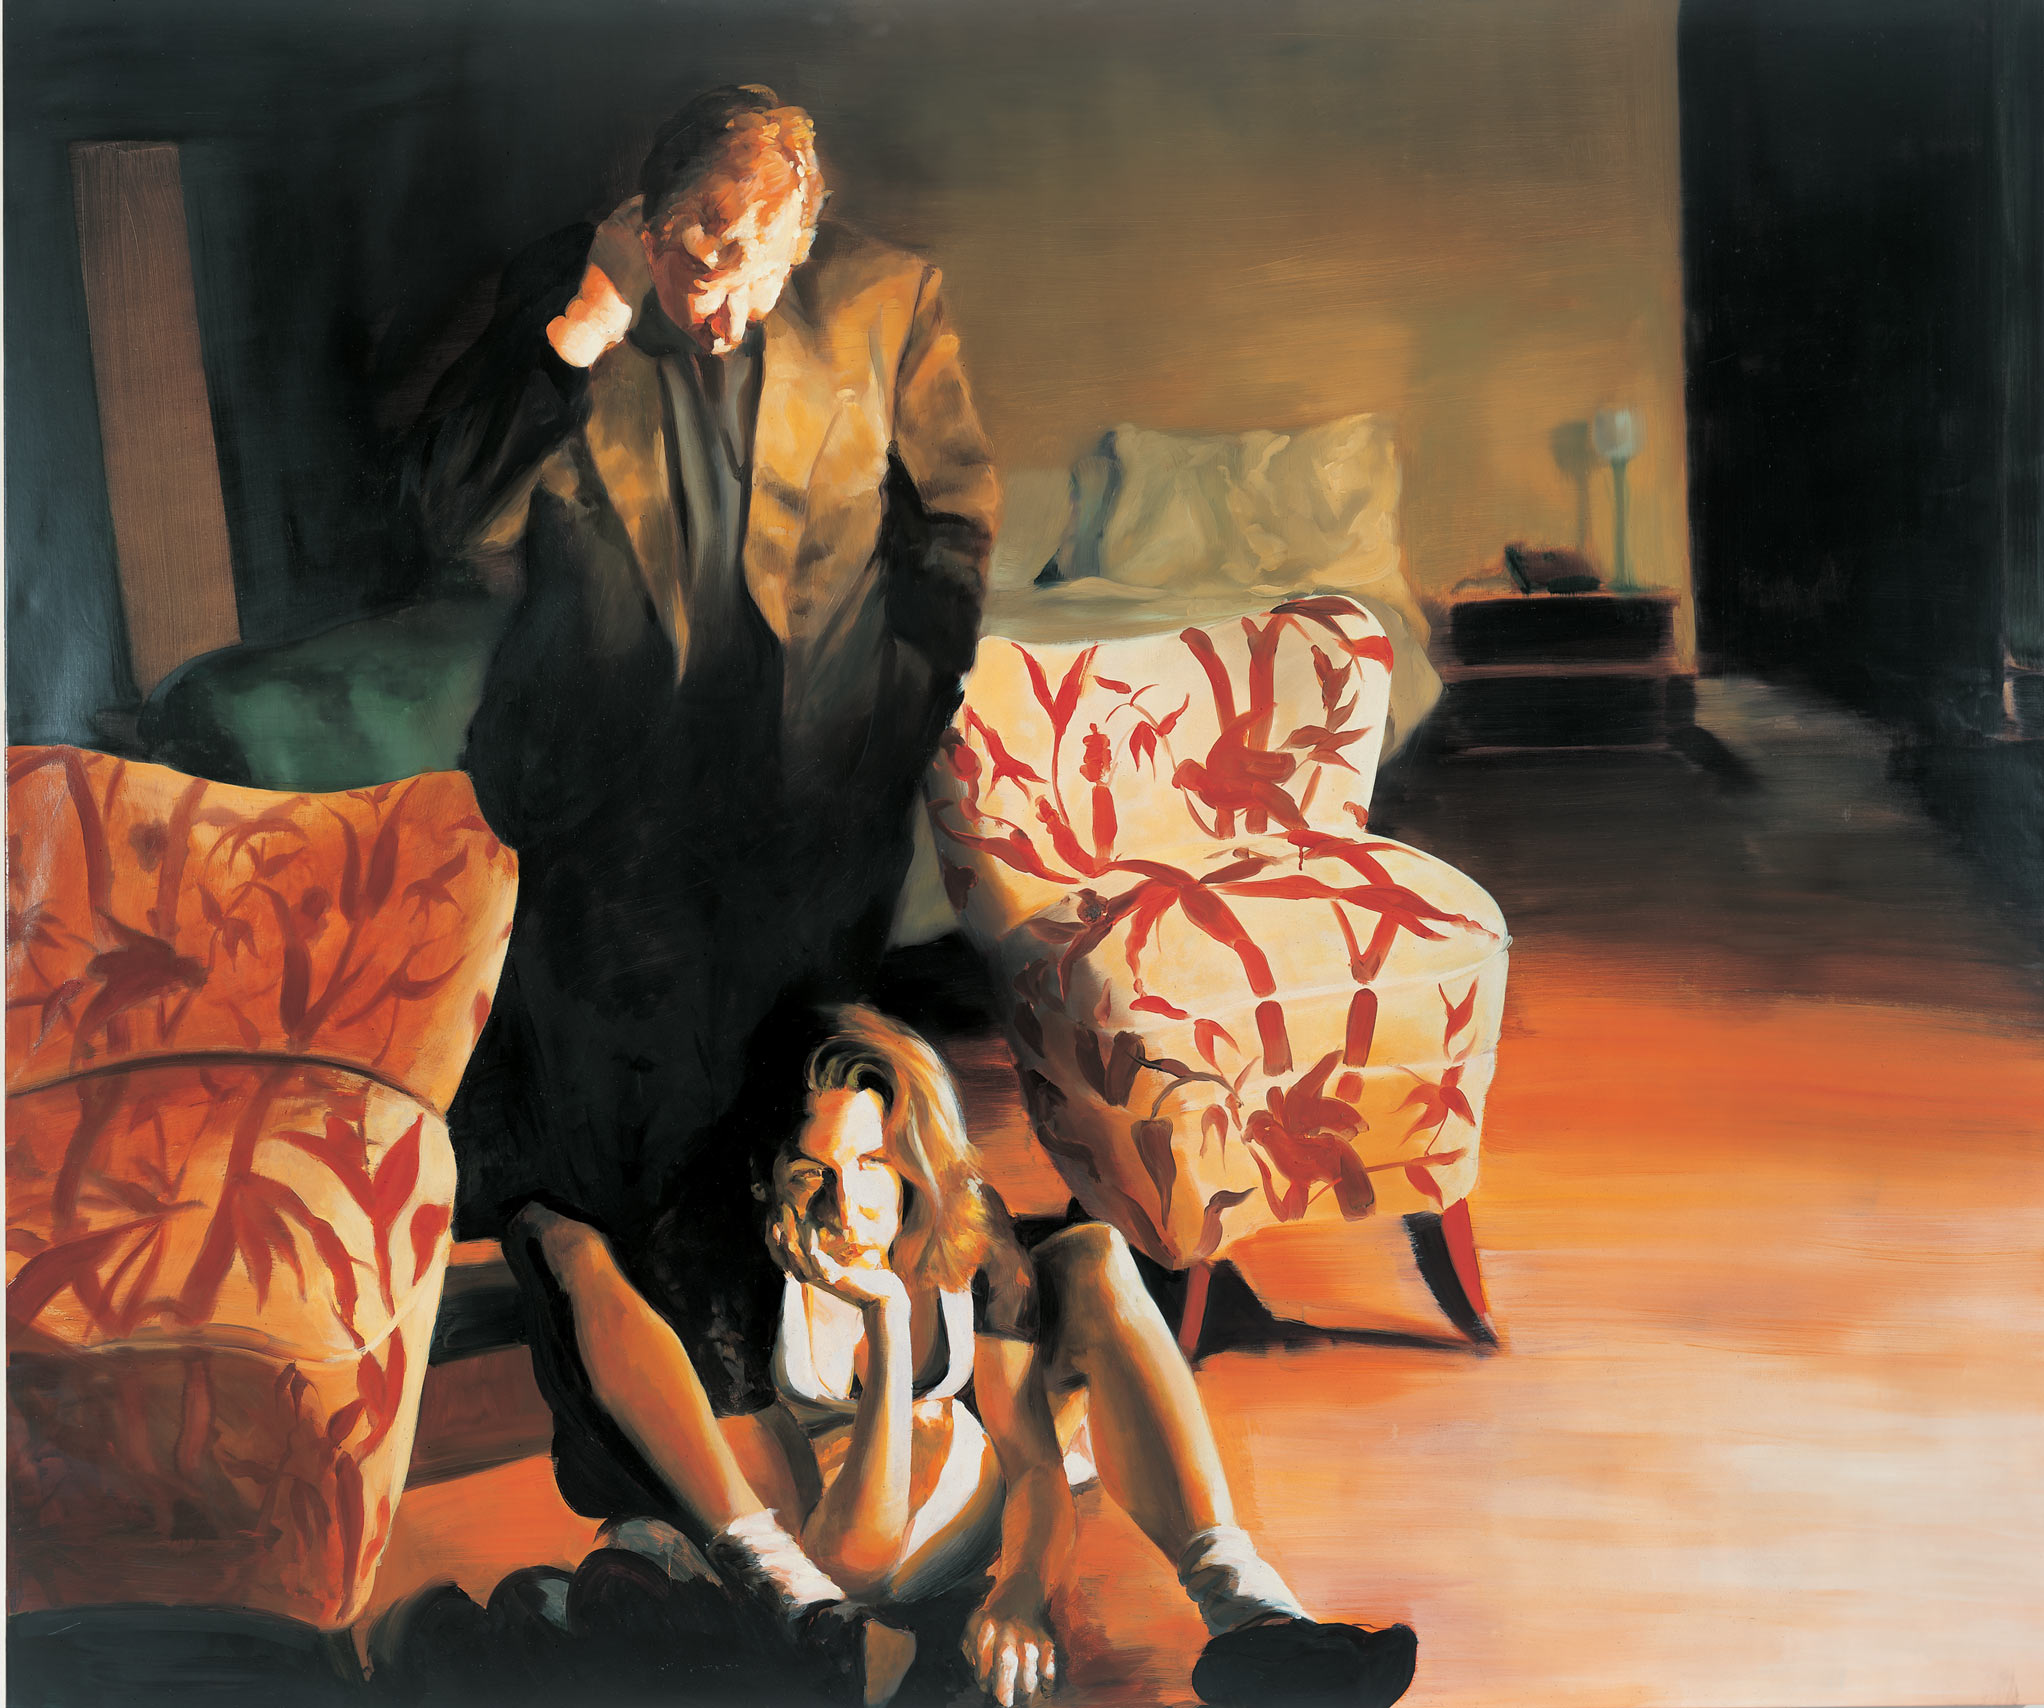 The Bed, The Chair, The Sitter, 1999. Oil on linen. 78 x 93 in. (198 x 236 cm.)